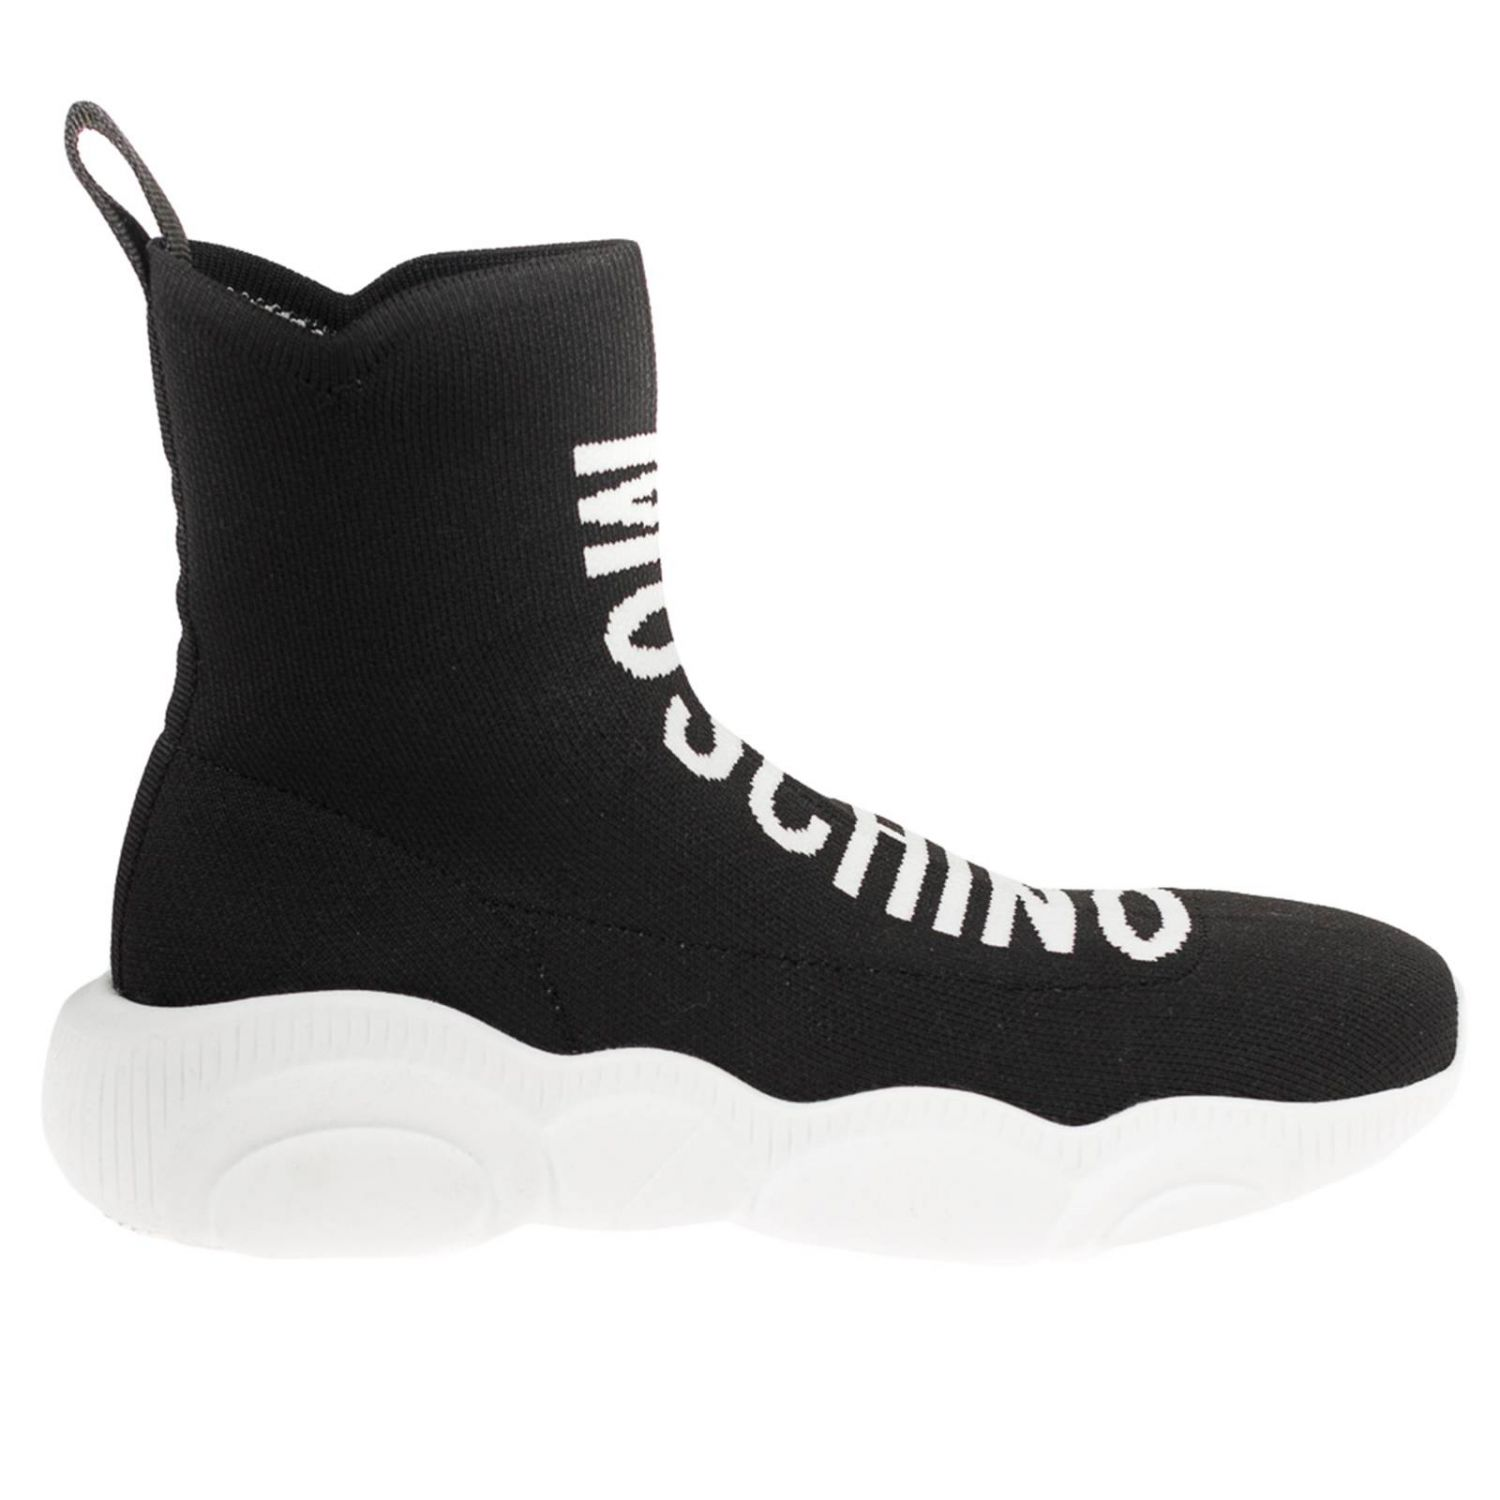 Sneakers Moschino Couture slip on a calza nero 1